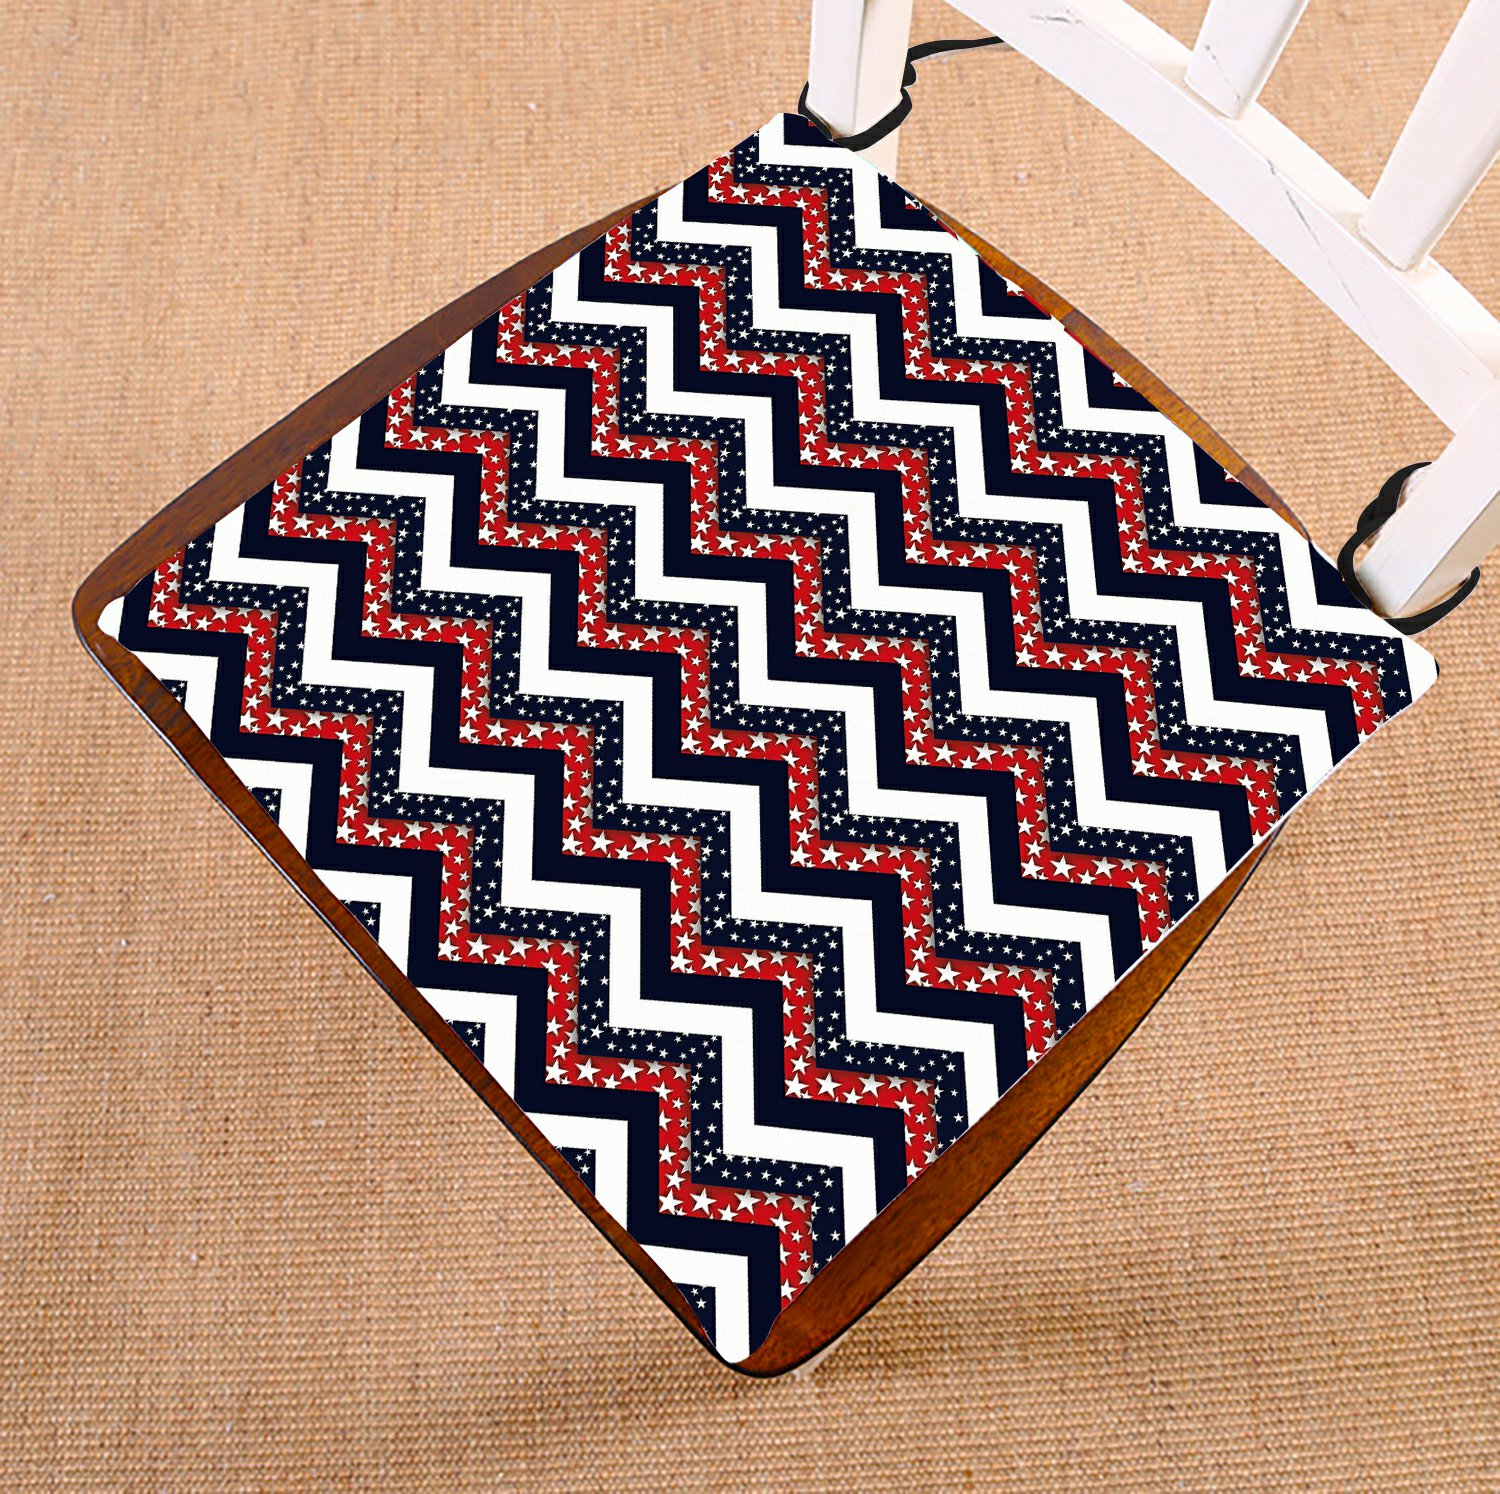 GCKG Dark Blue Red and White Star Chevron Chair Pad Seat Cushion Chair Cushion Floor Cushion with Breathable Memory Inner Cushion and Ties Two Sides Printing 16x16 inches